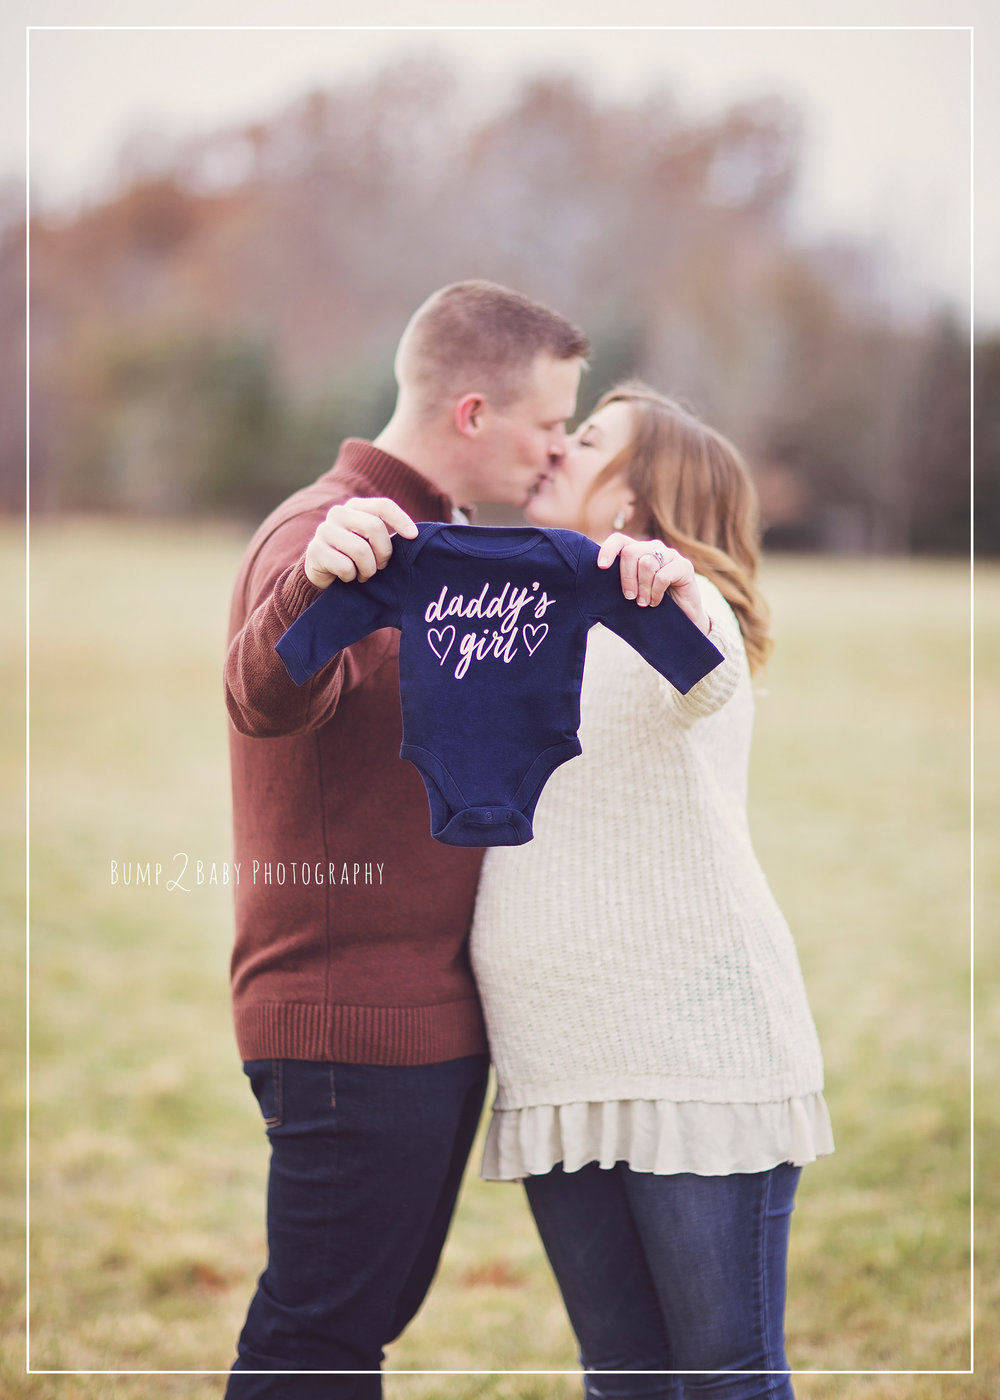 Maternity-Session-Parents-Holding-Daddys-Girl-Onesie.jpg